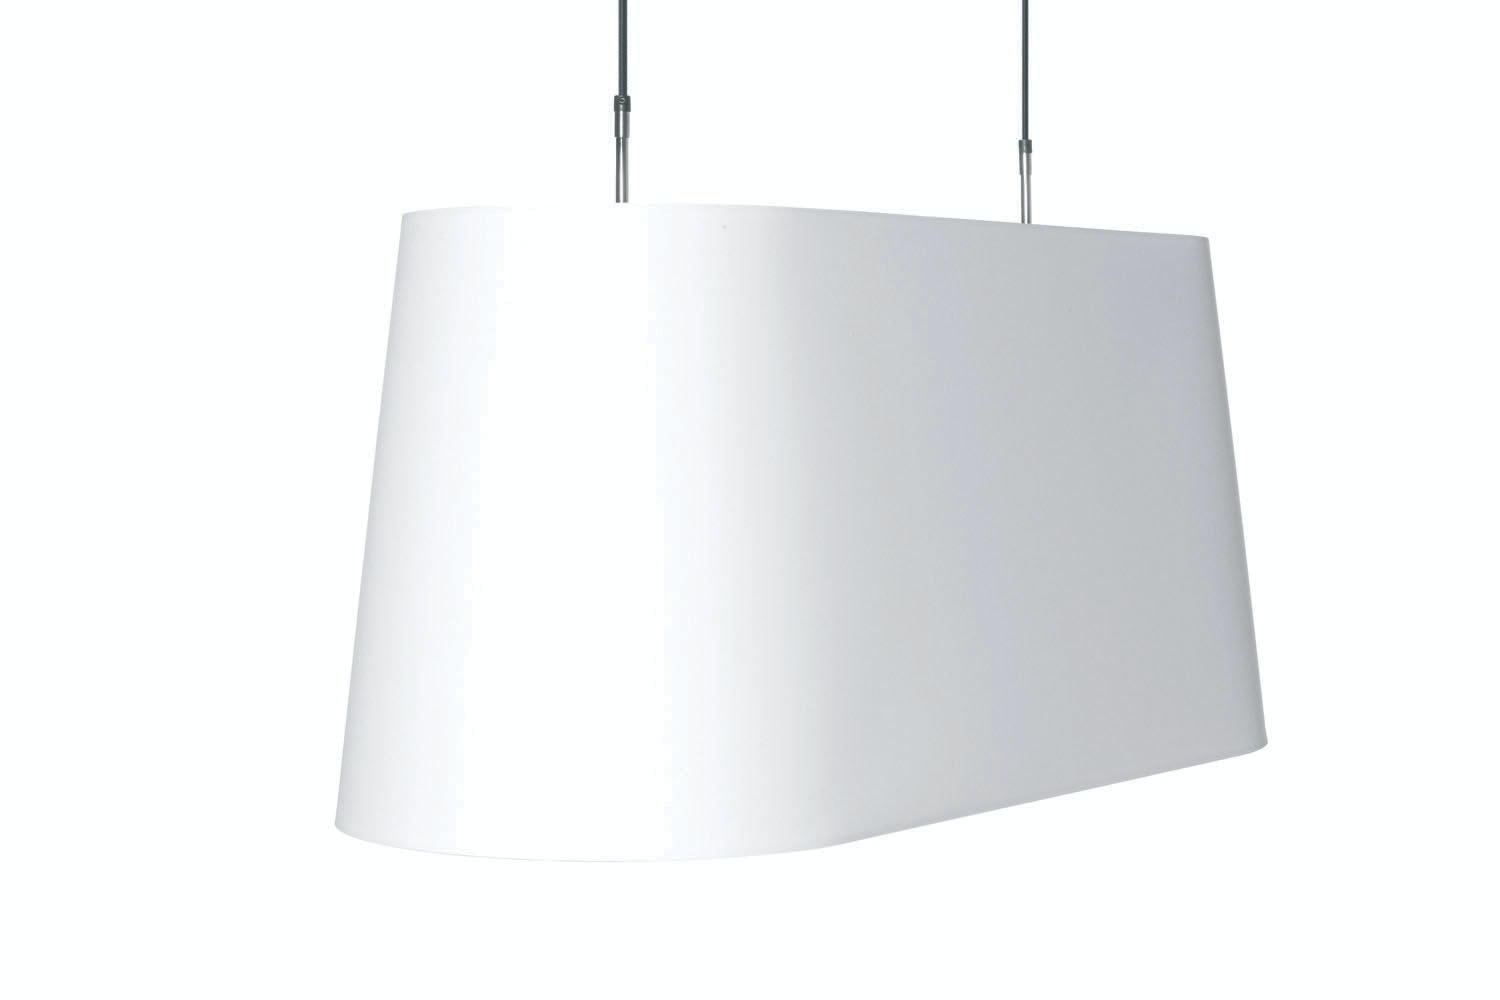 Oval Light Suspension Lamp by Marcel Wanders for Moooi